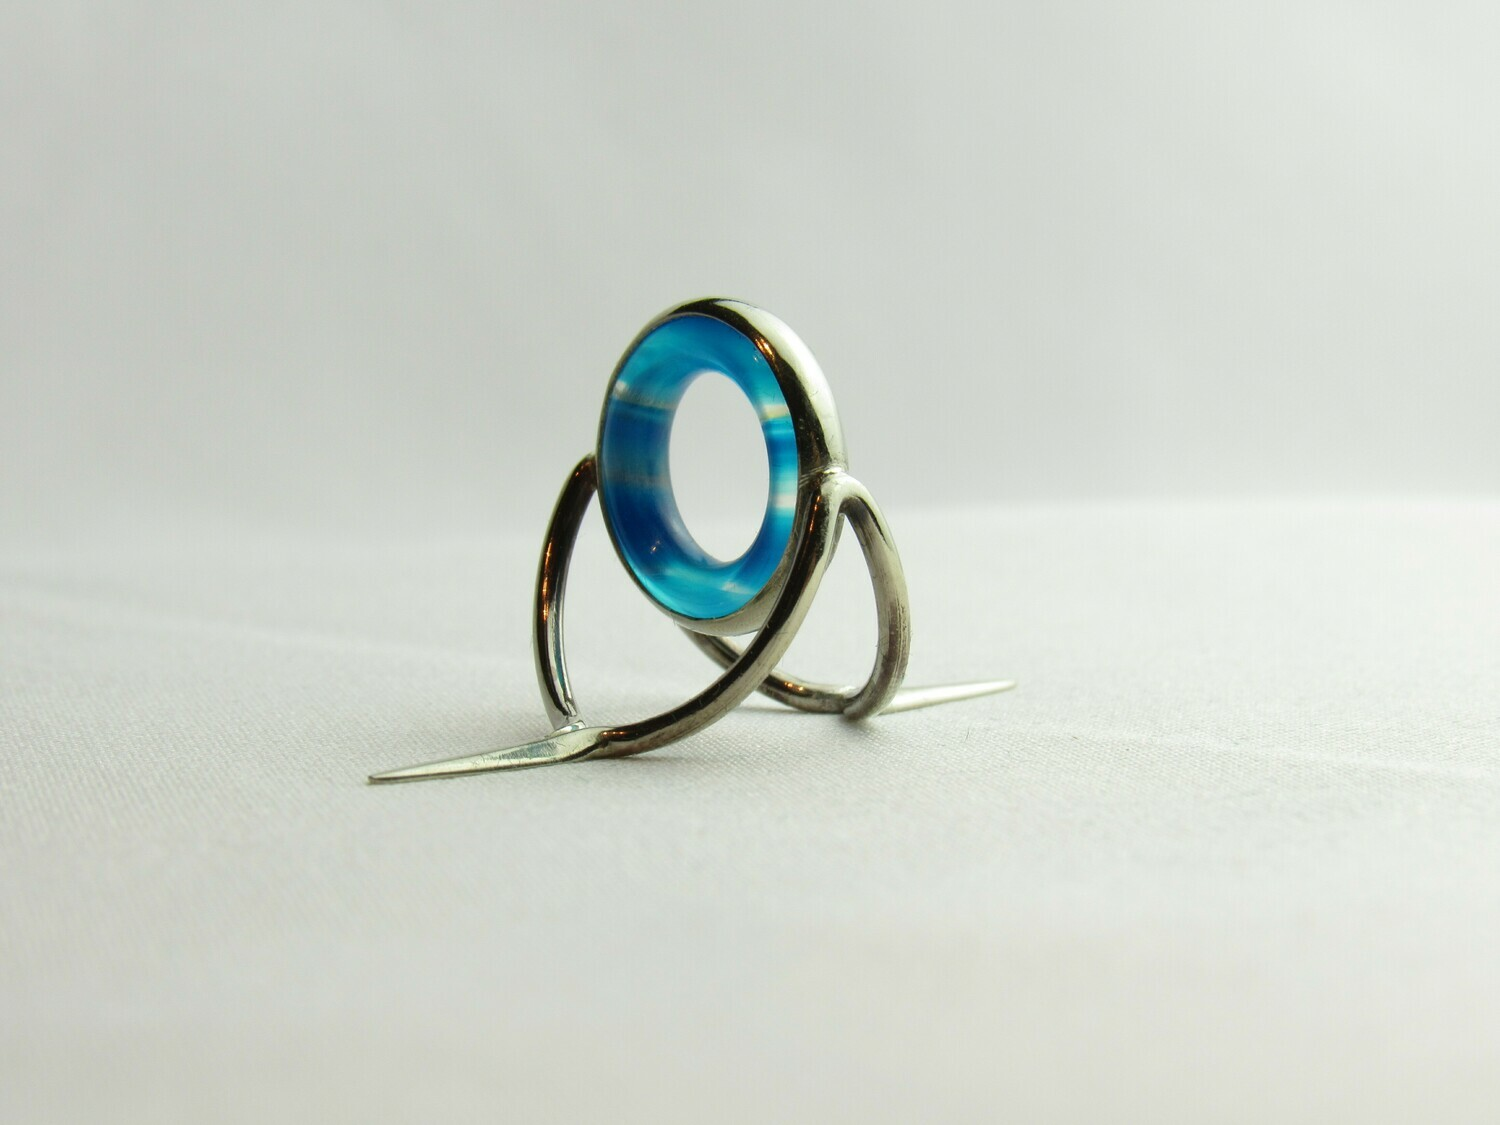 Agate Perfect Stripping Guide Ring 12mm Blue / banded